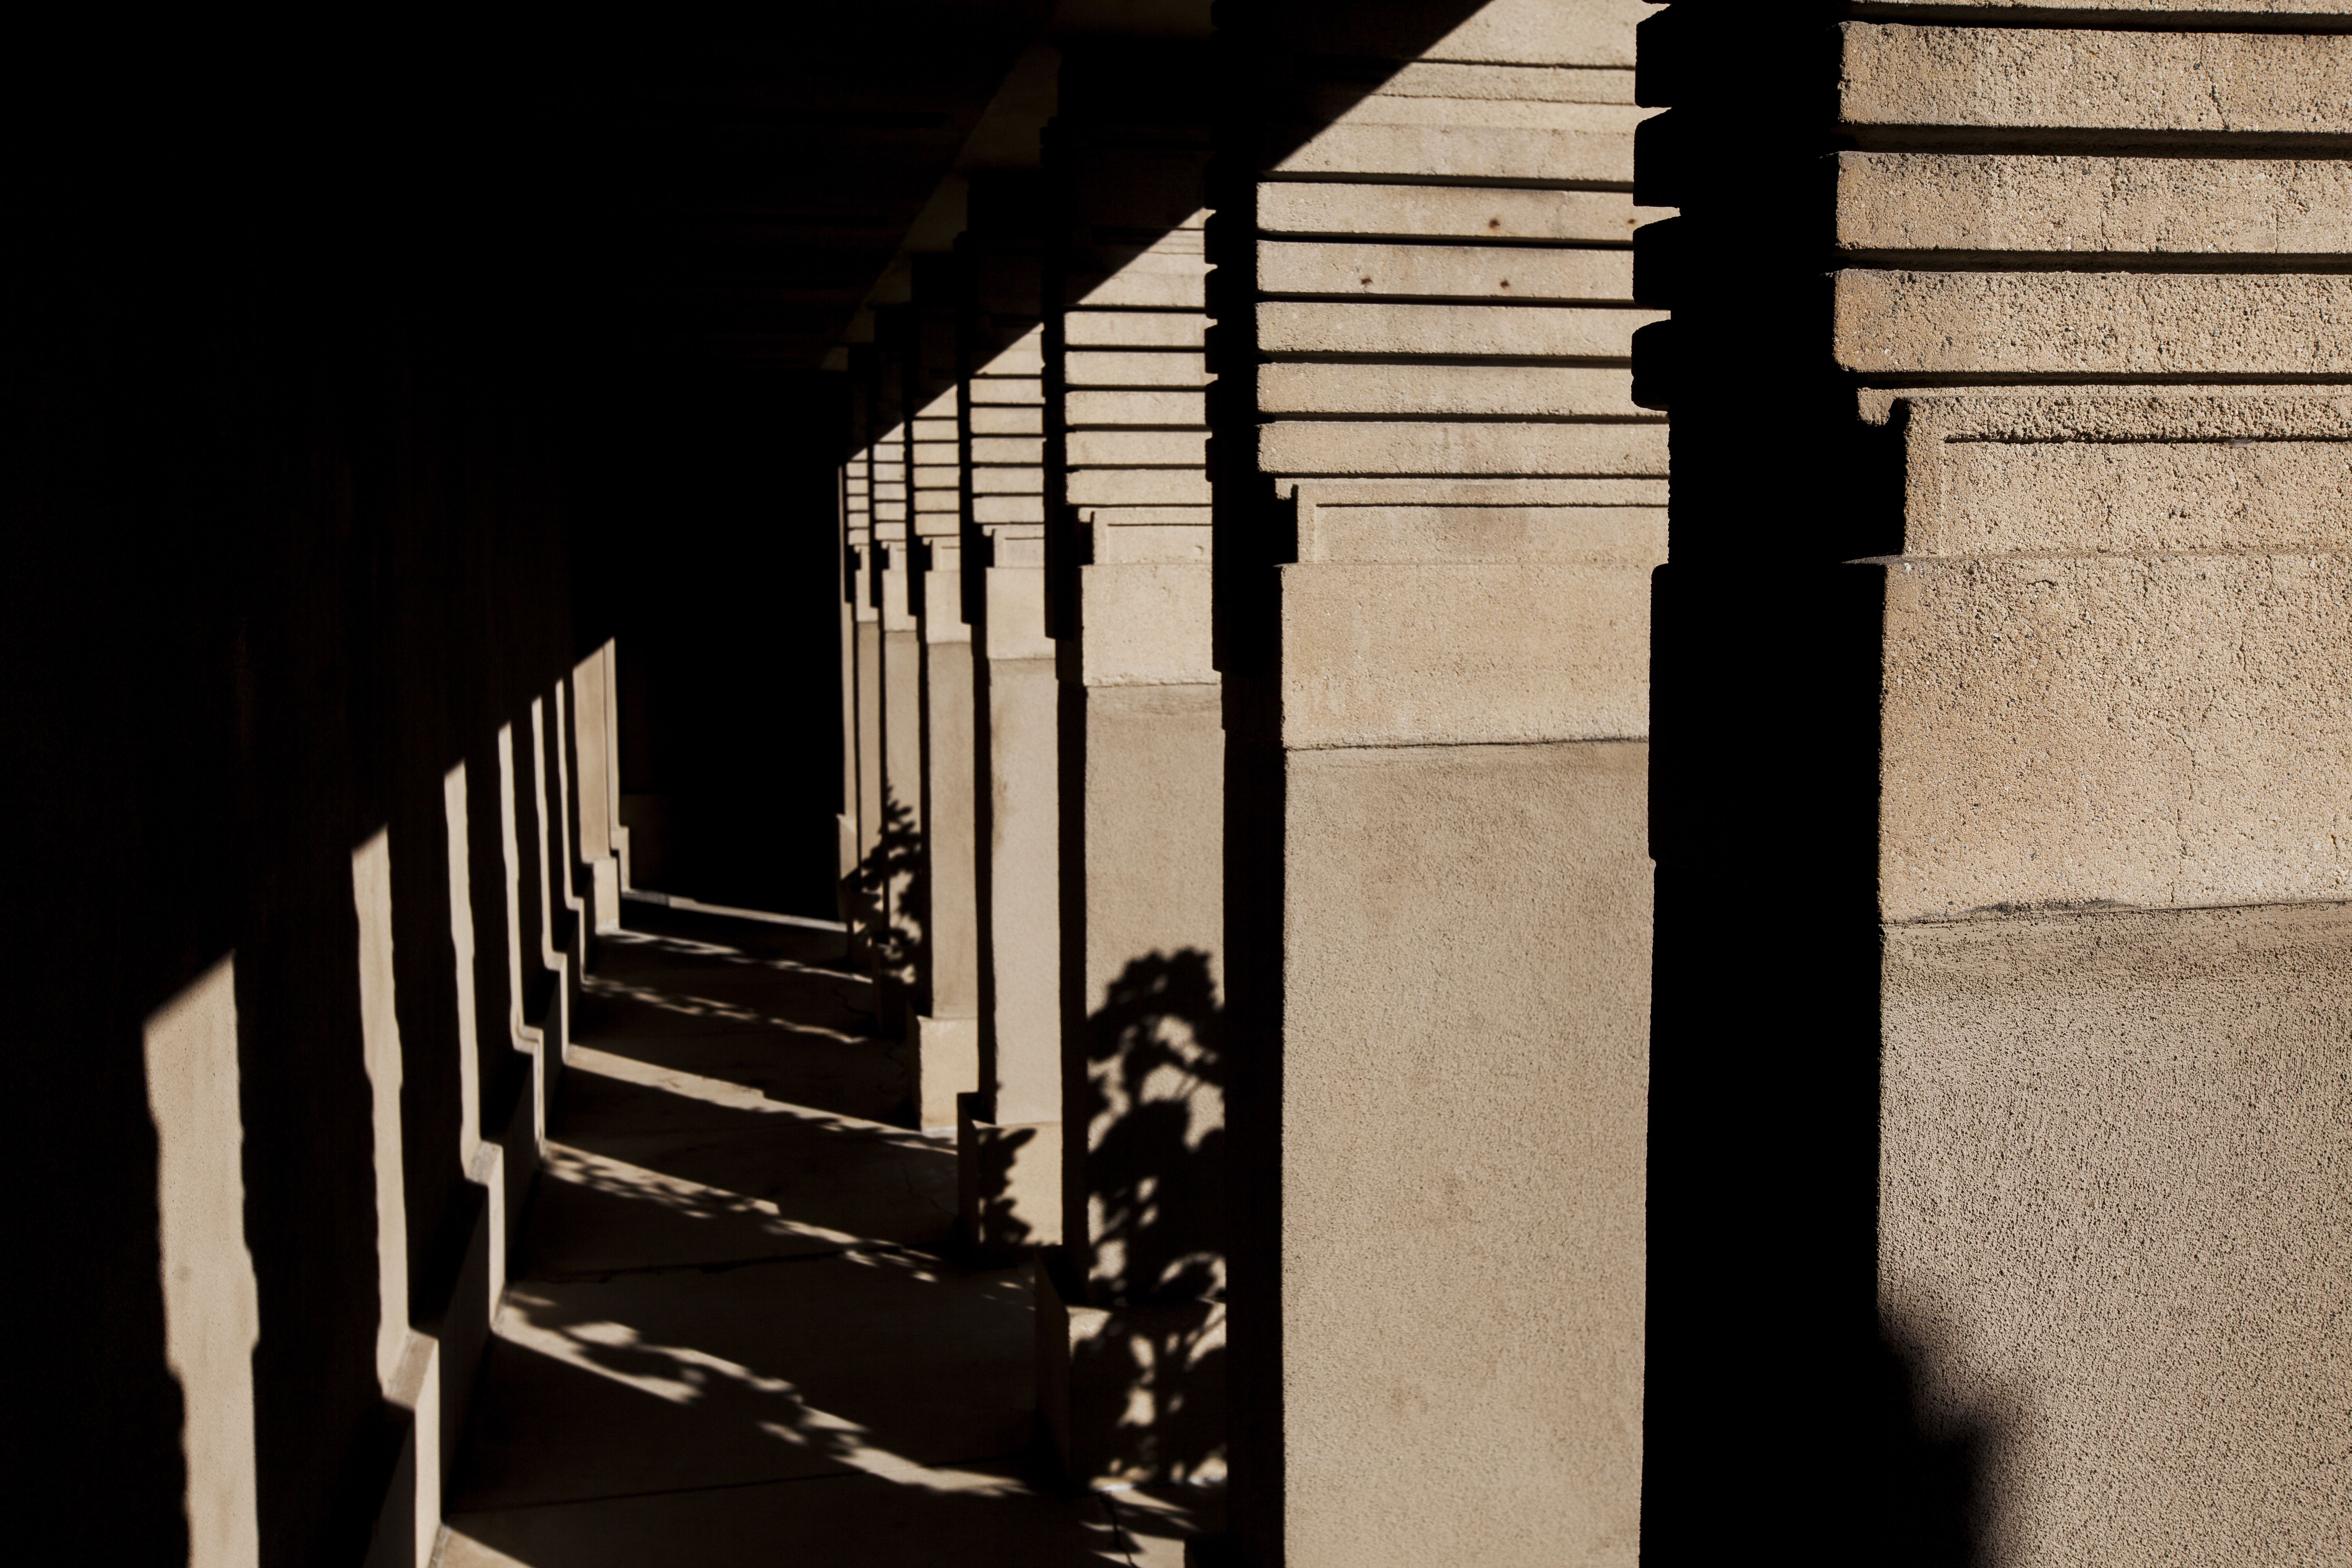 Concrete colonnade of the Hollyhock House